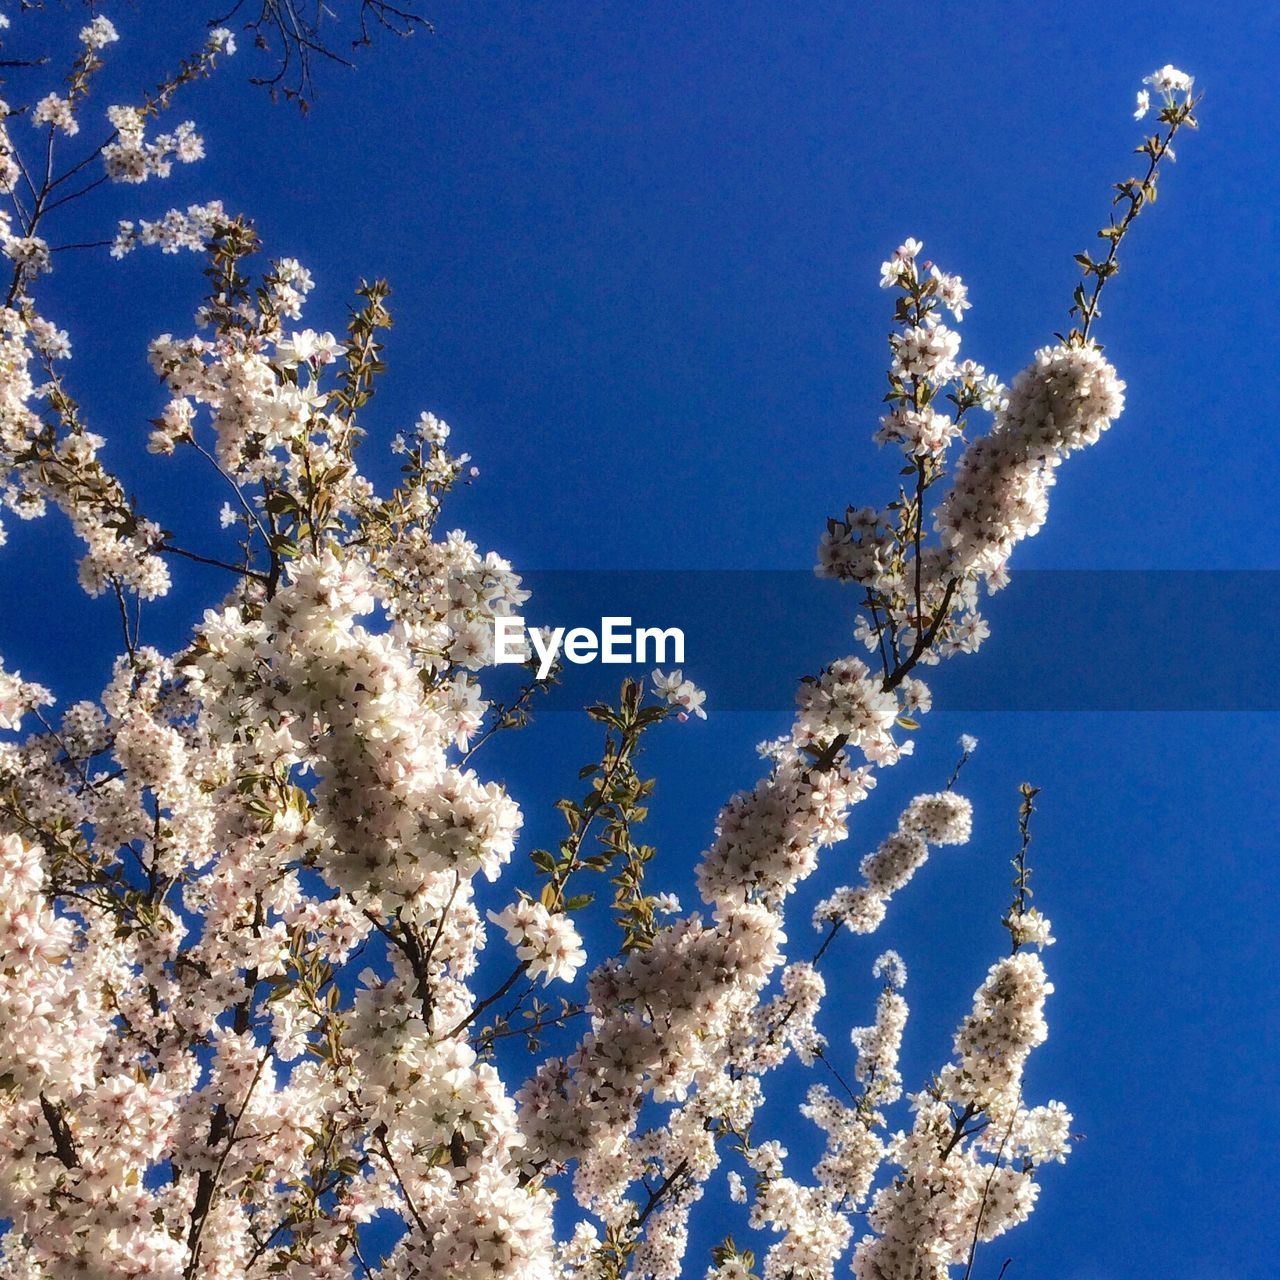 Low angle view of fresh white flowers blooming in openshaw park against clear sky